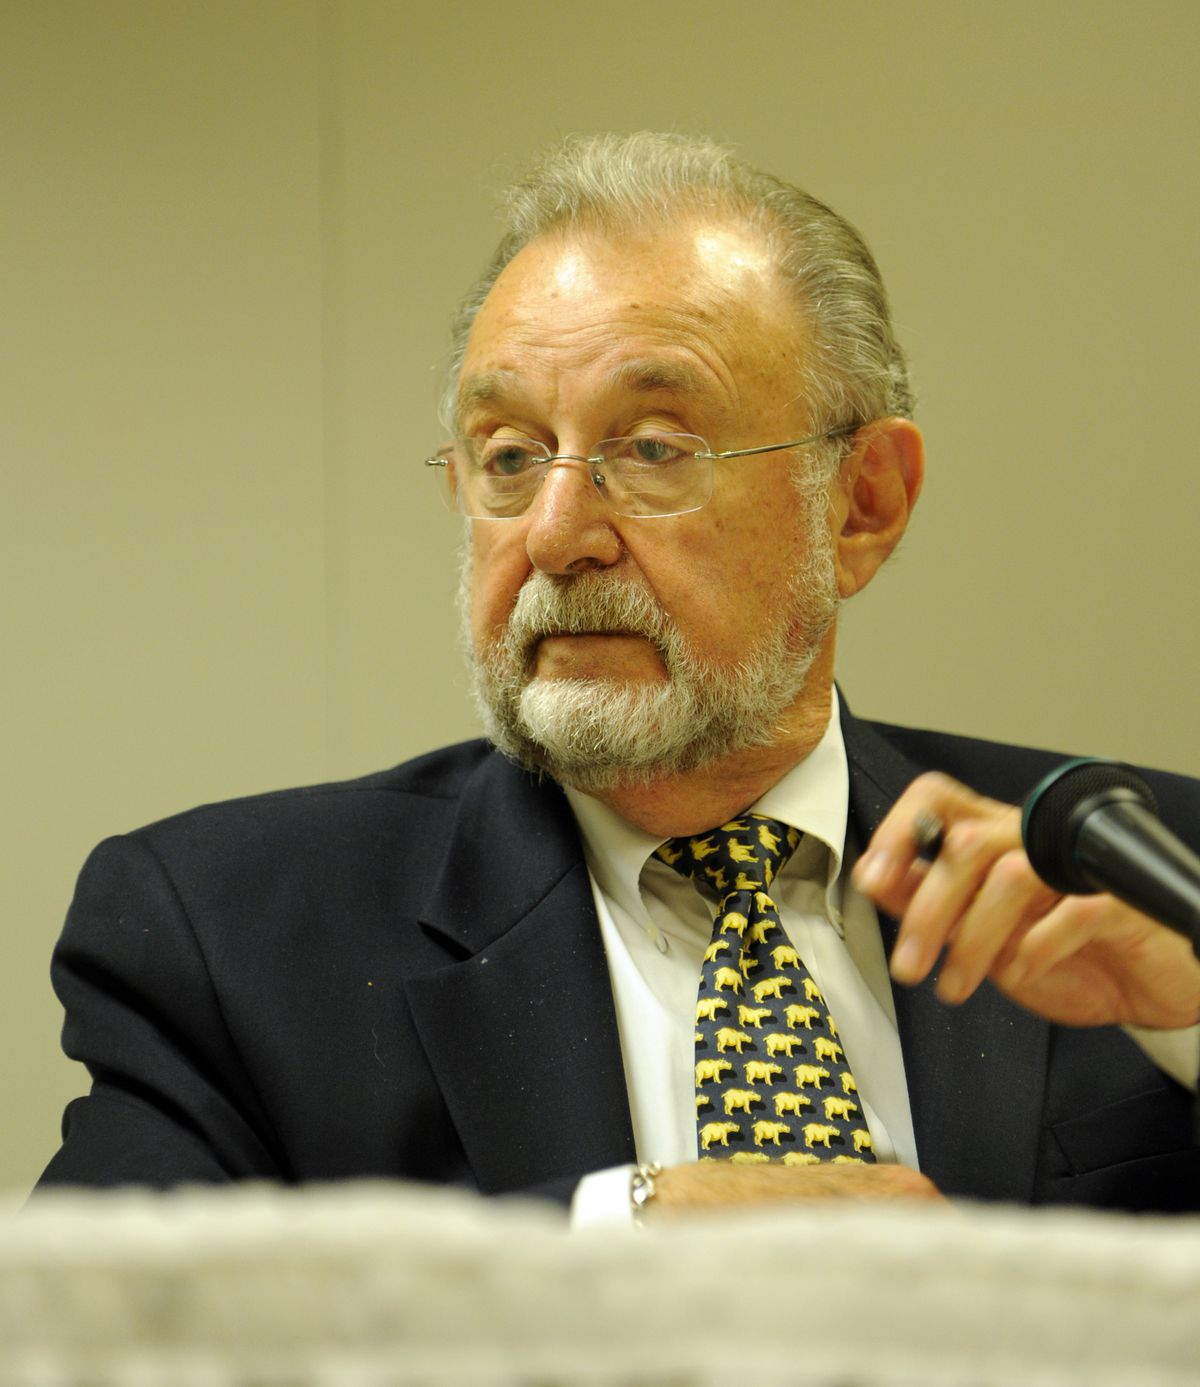 Former Illinois Gaming Board chairman Aaron Jaffe pictured in June 2011.